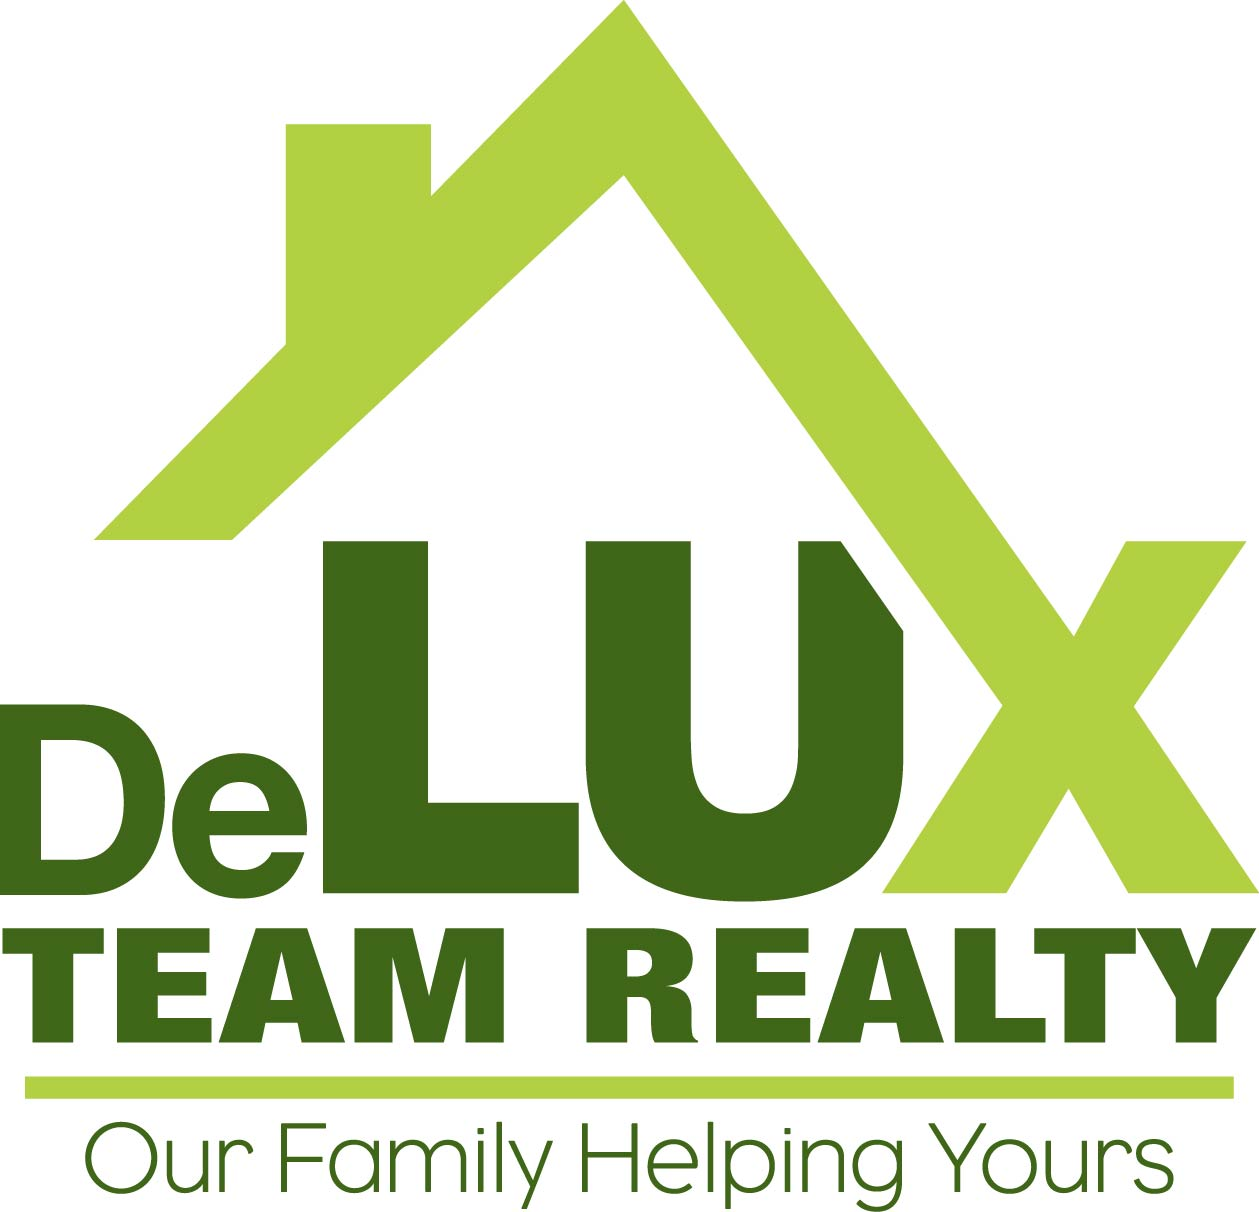 MB DeLUX Team Realty Inc